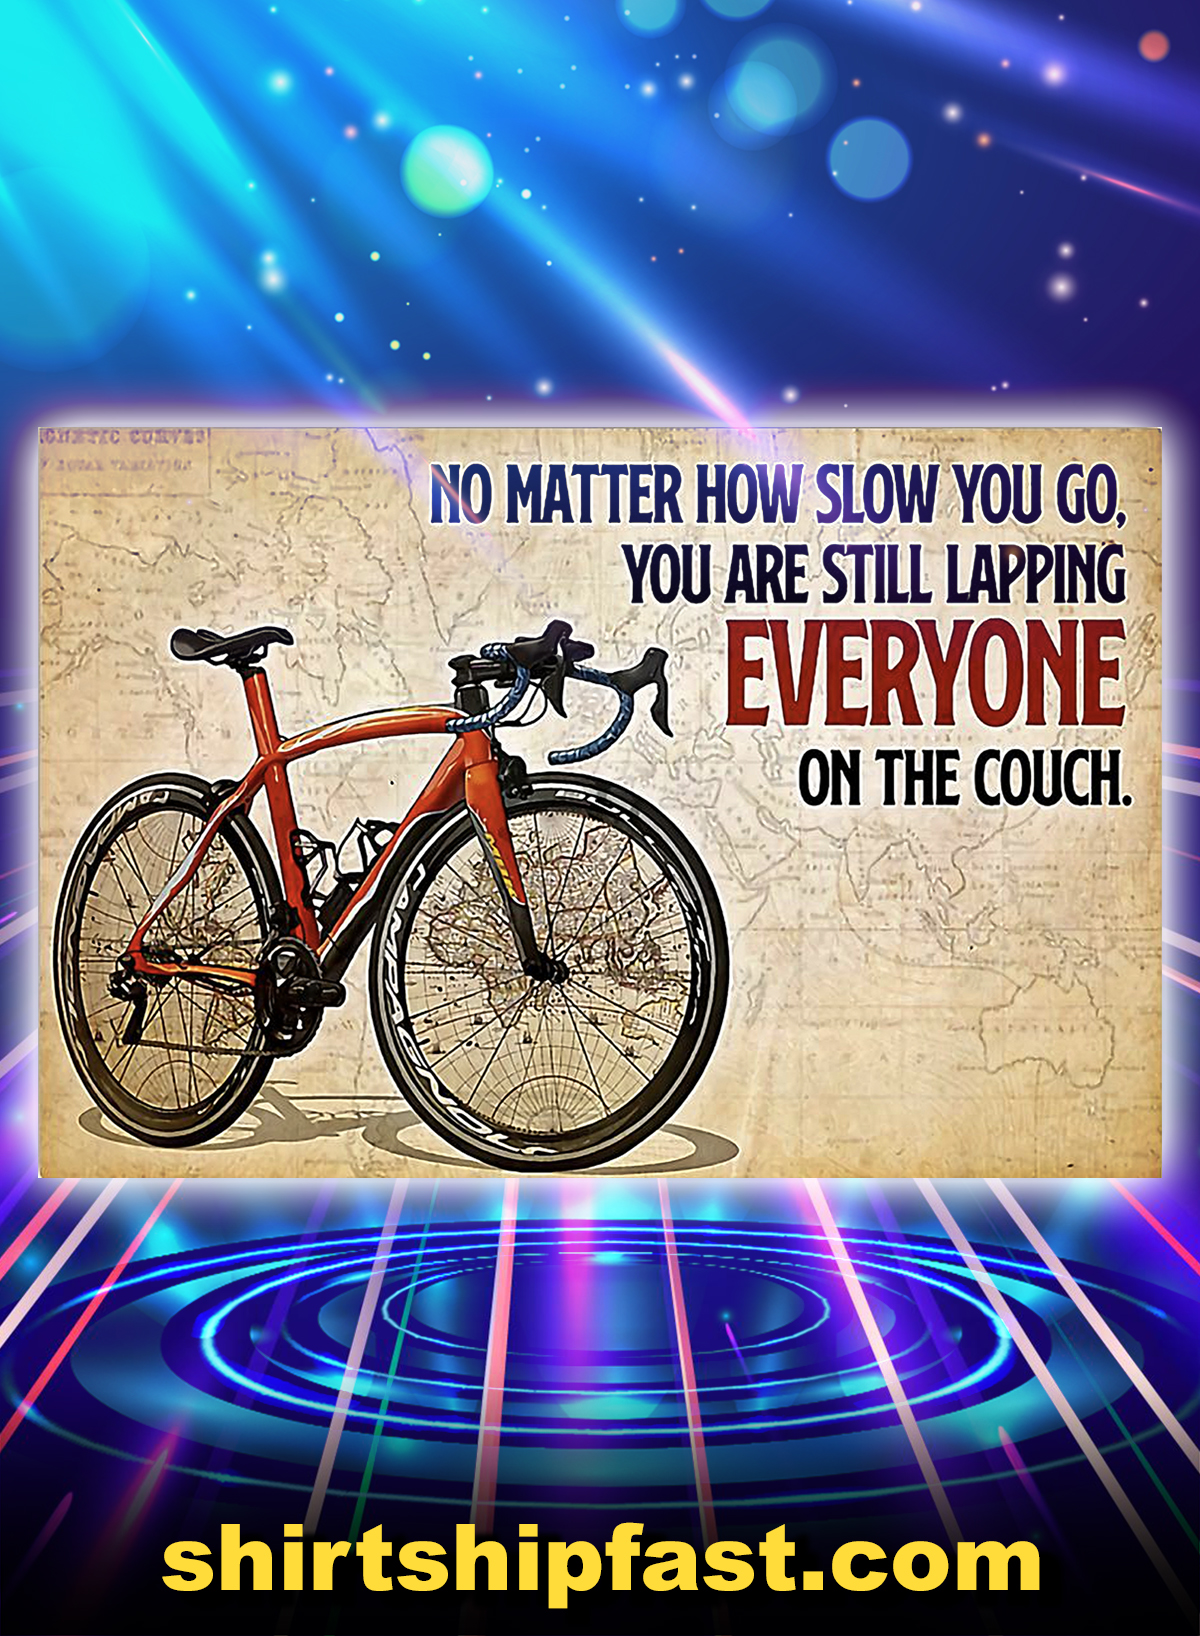 Cycling bicycle no matter how slow you go poster - A4